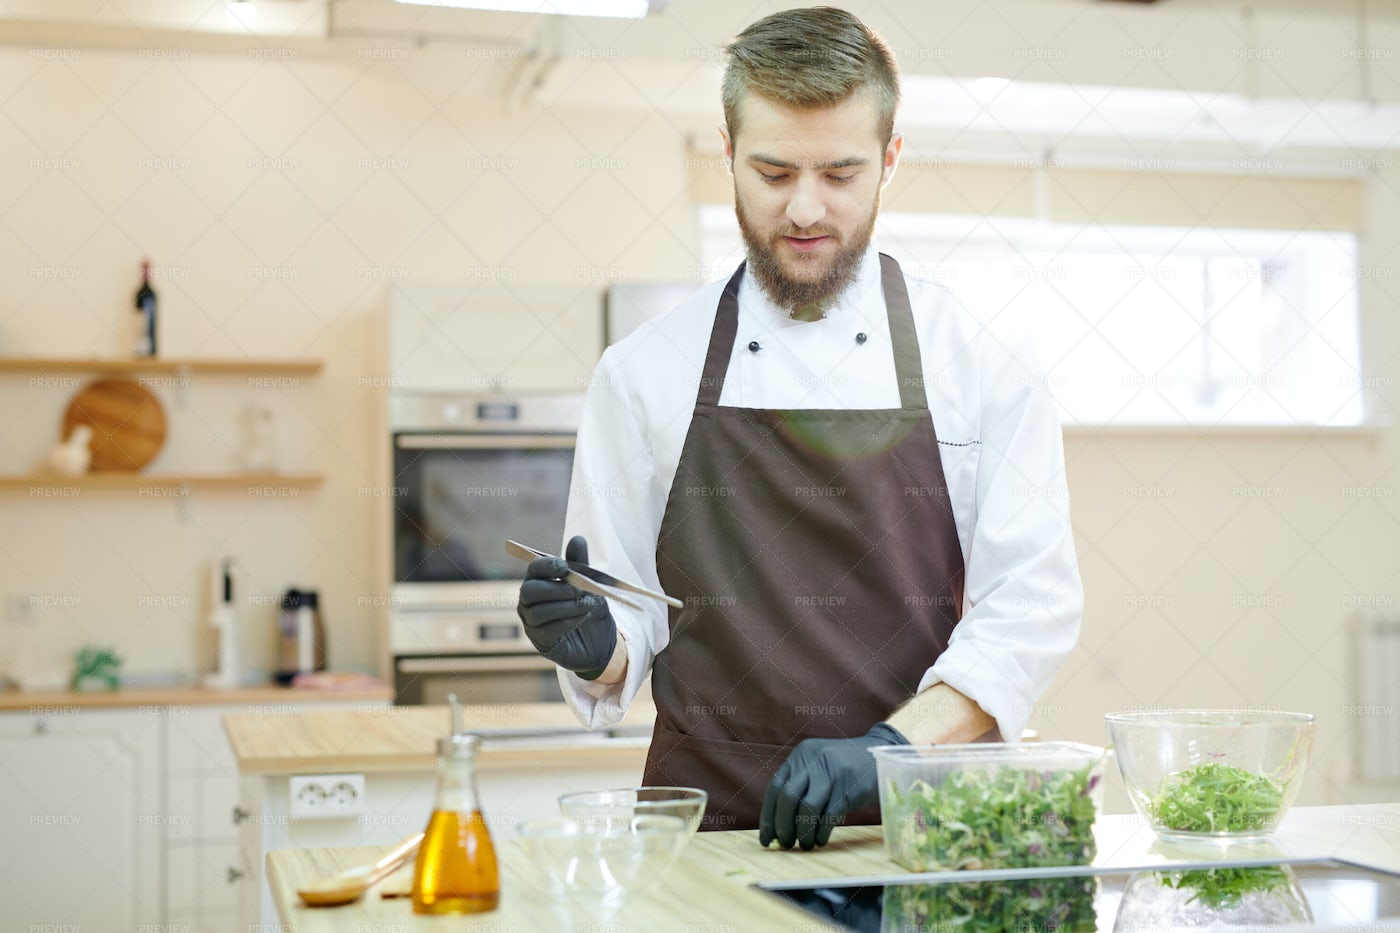 Professional Chef Cooking In...: Stock Photos